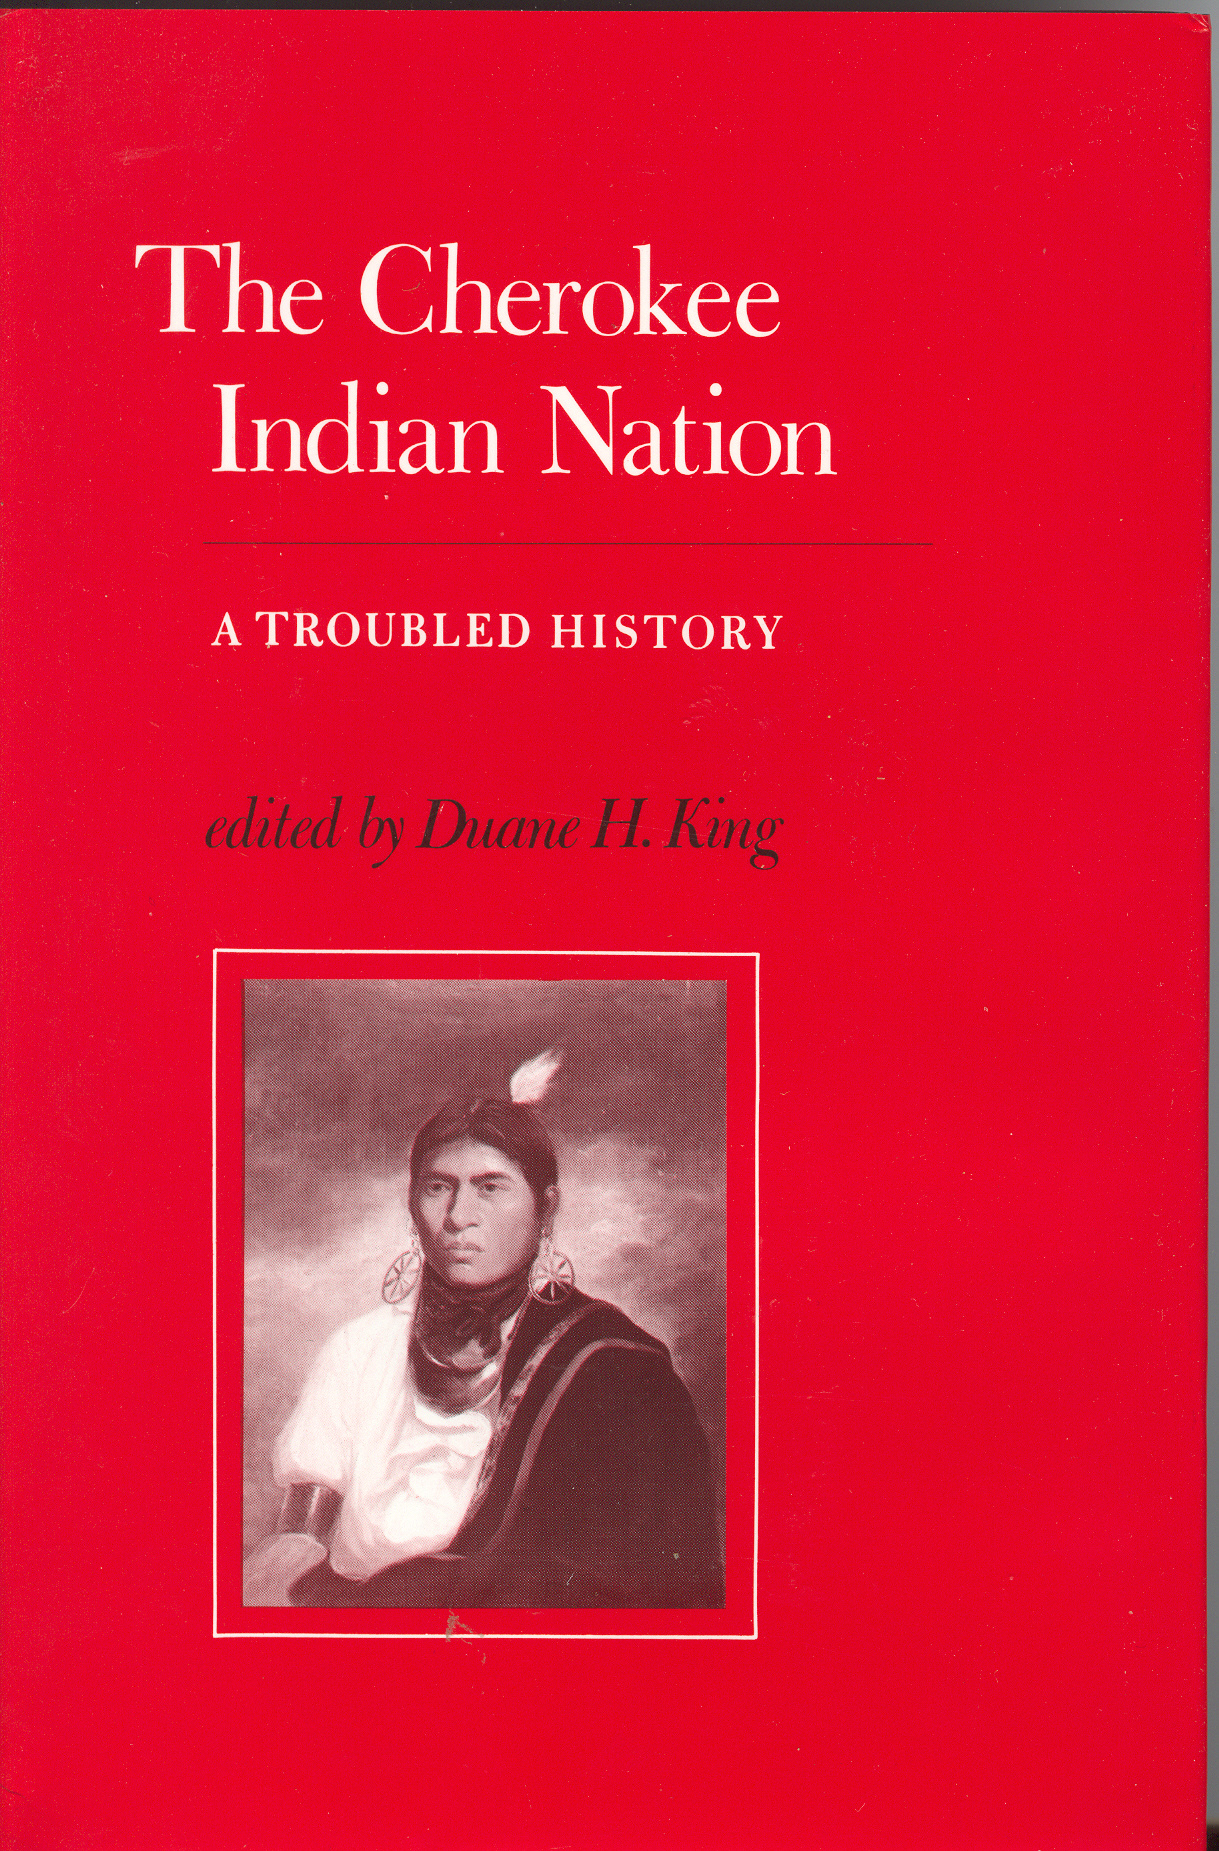 THE CHEROKEE INDIAN NATION, A Troubled History